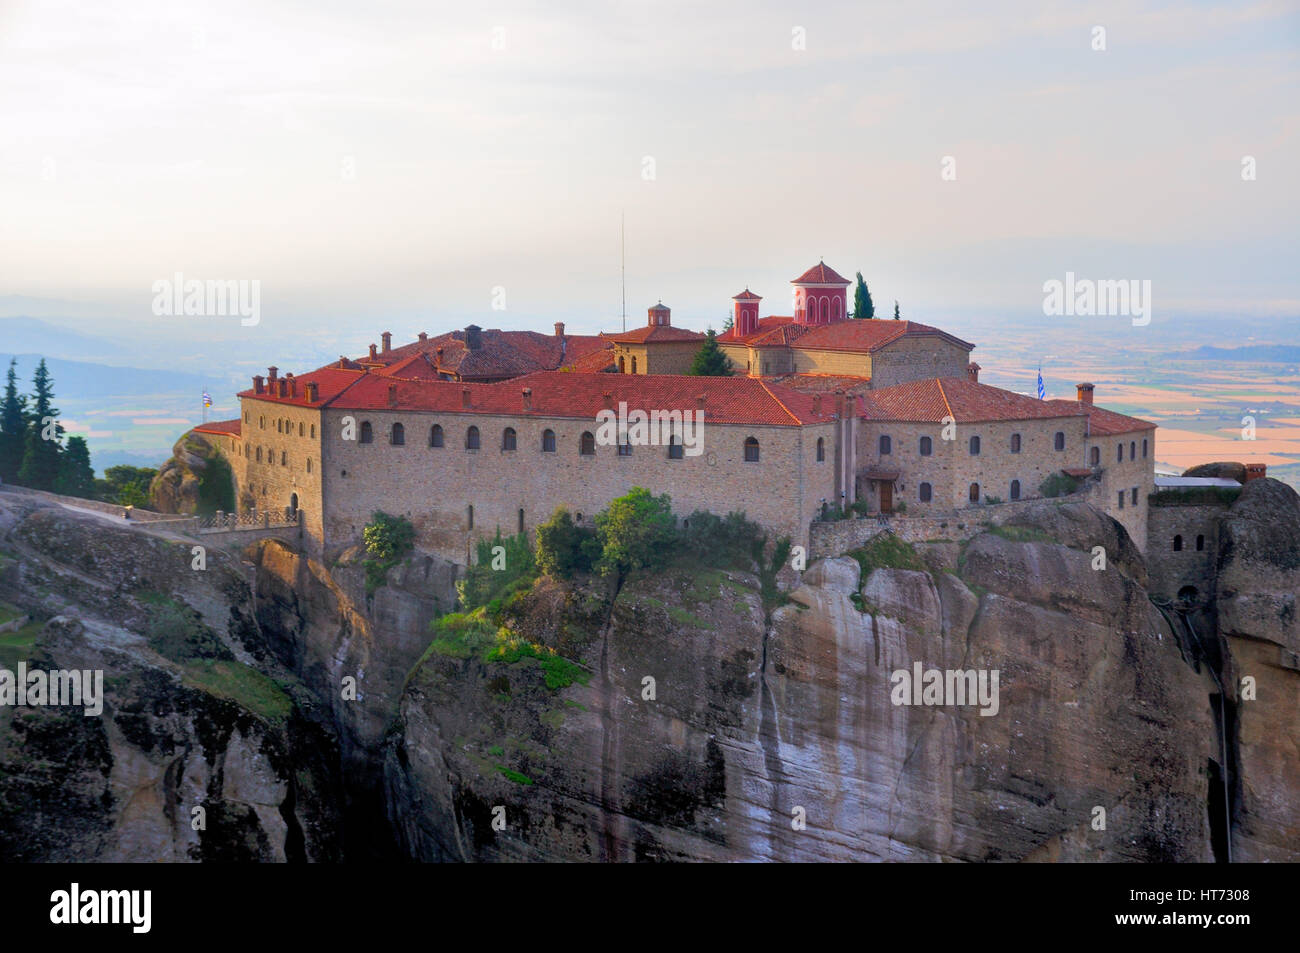 Meteora Monasteries located north of Greece in the region of Thessaly - Stock Image